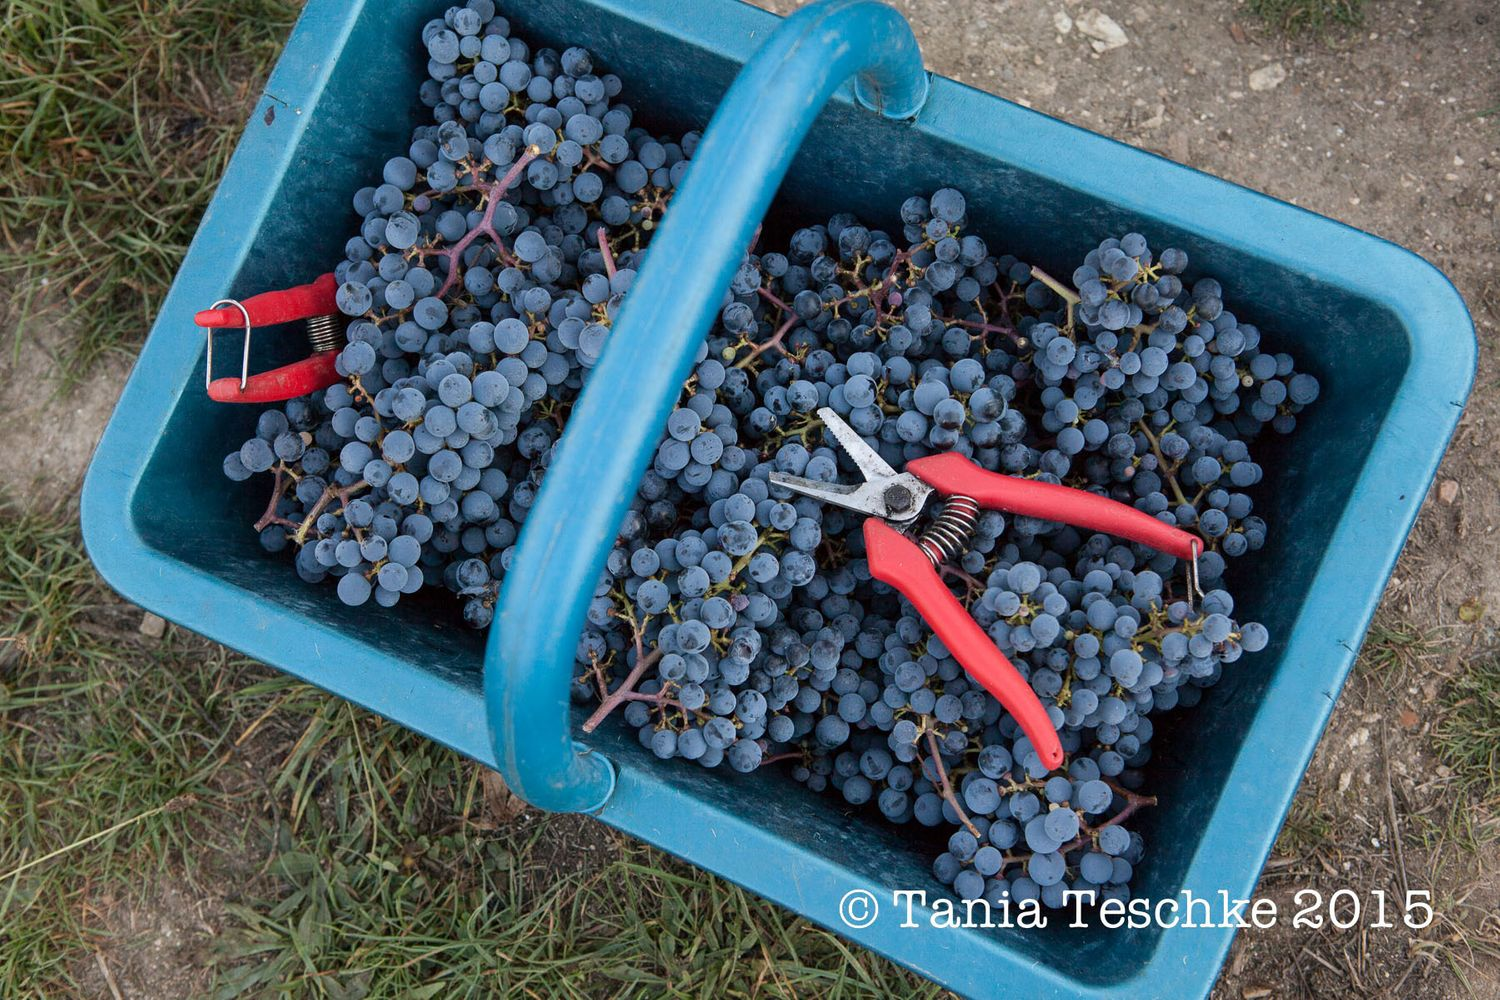 1tania_teschke_photography_ch_guadet_vendanges_2015_0720